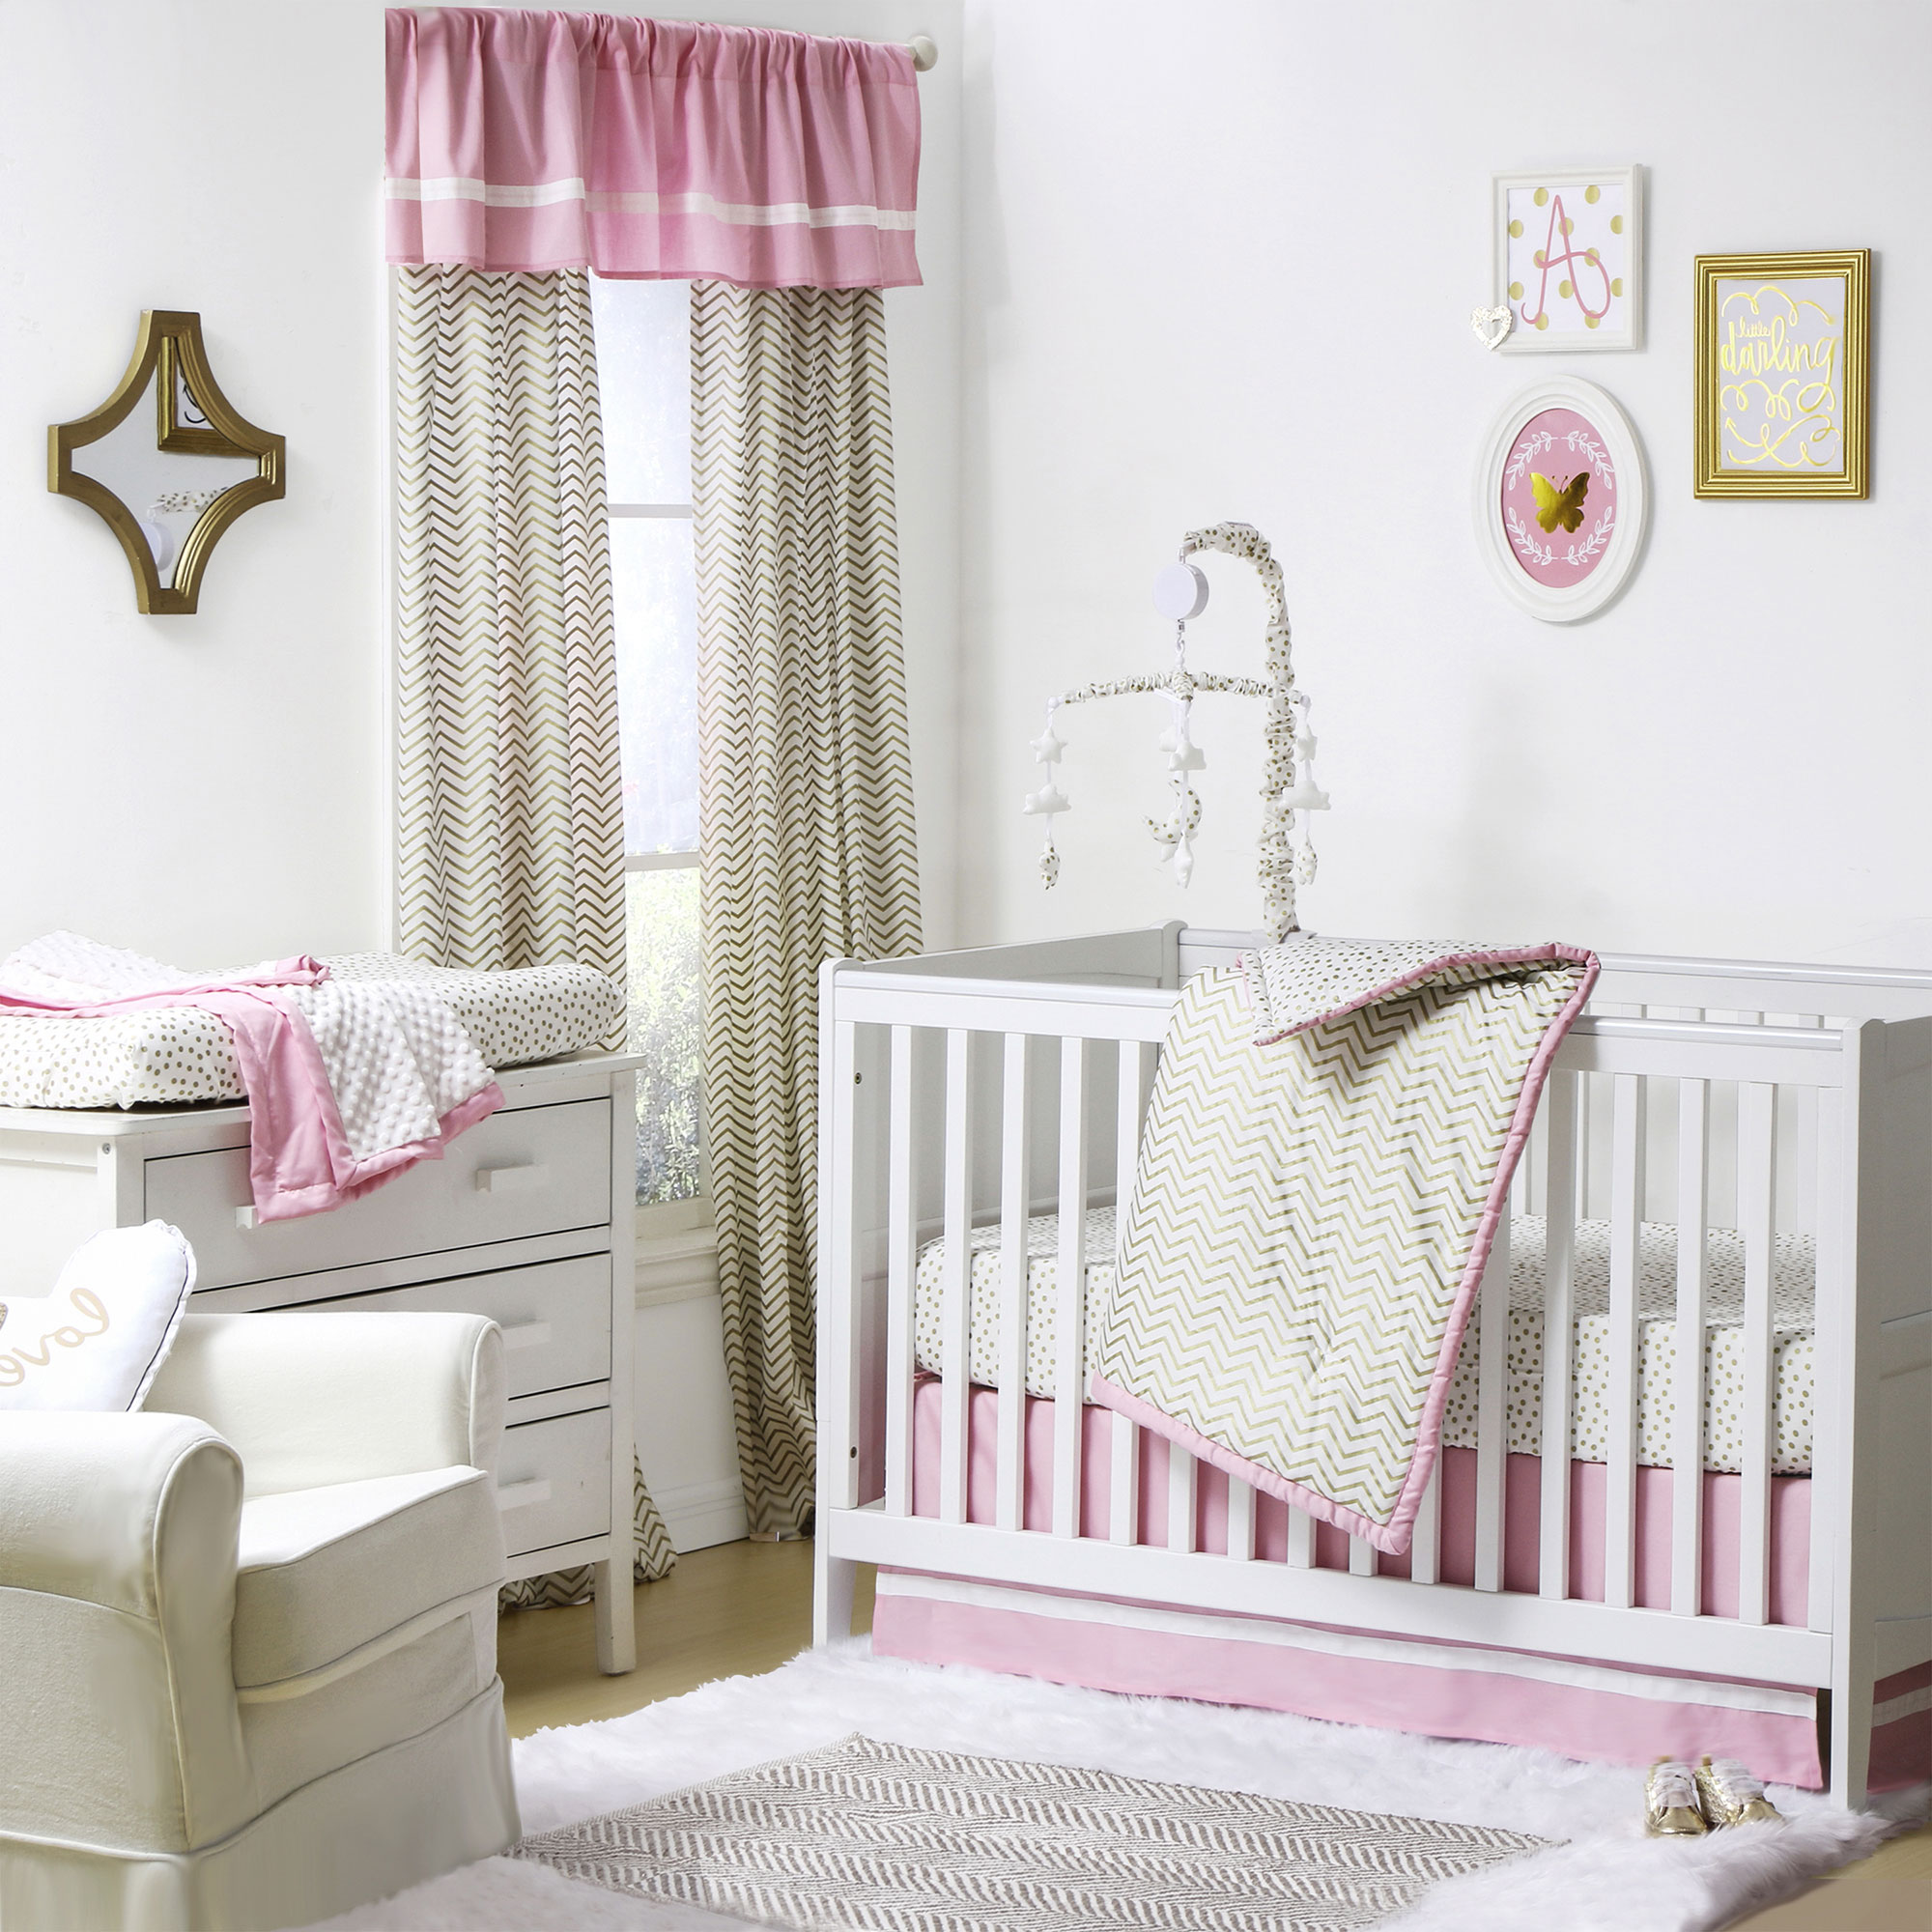 The Peanut Shell 4 Piece Baby Crib Bedding Set - Gold Zig Zag and Polka Dots with Pink Trim - 100% Cotton Quilt, Dust Ruffle, Fitted Sheet, and Mobile